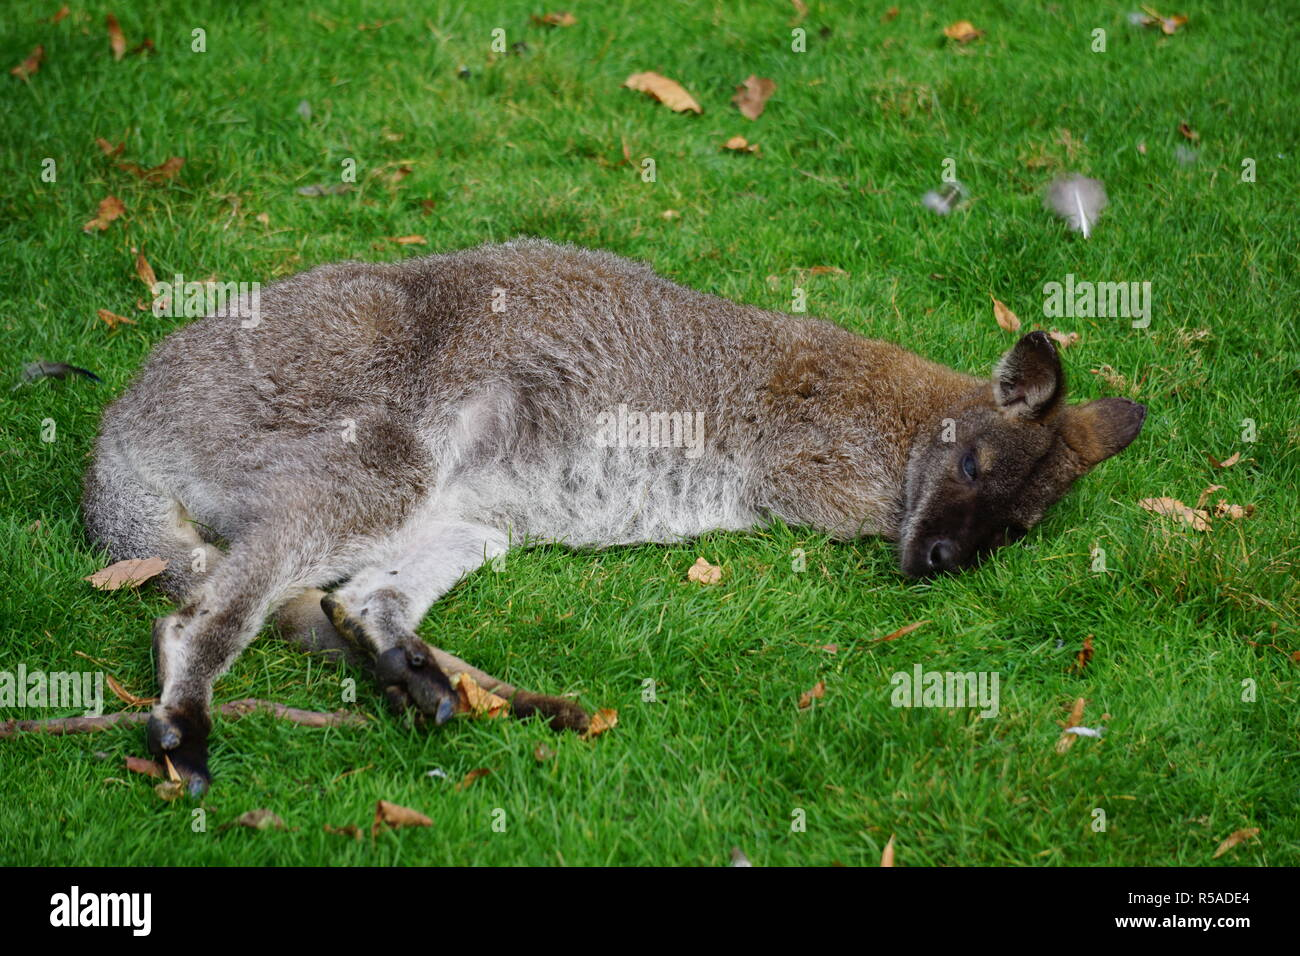 Close up of a snoozing wallaby in the grass in the park - Stock Image